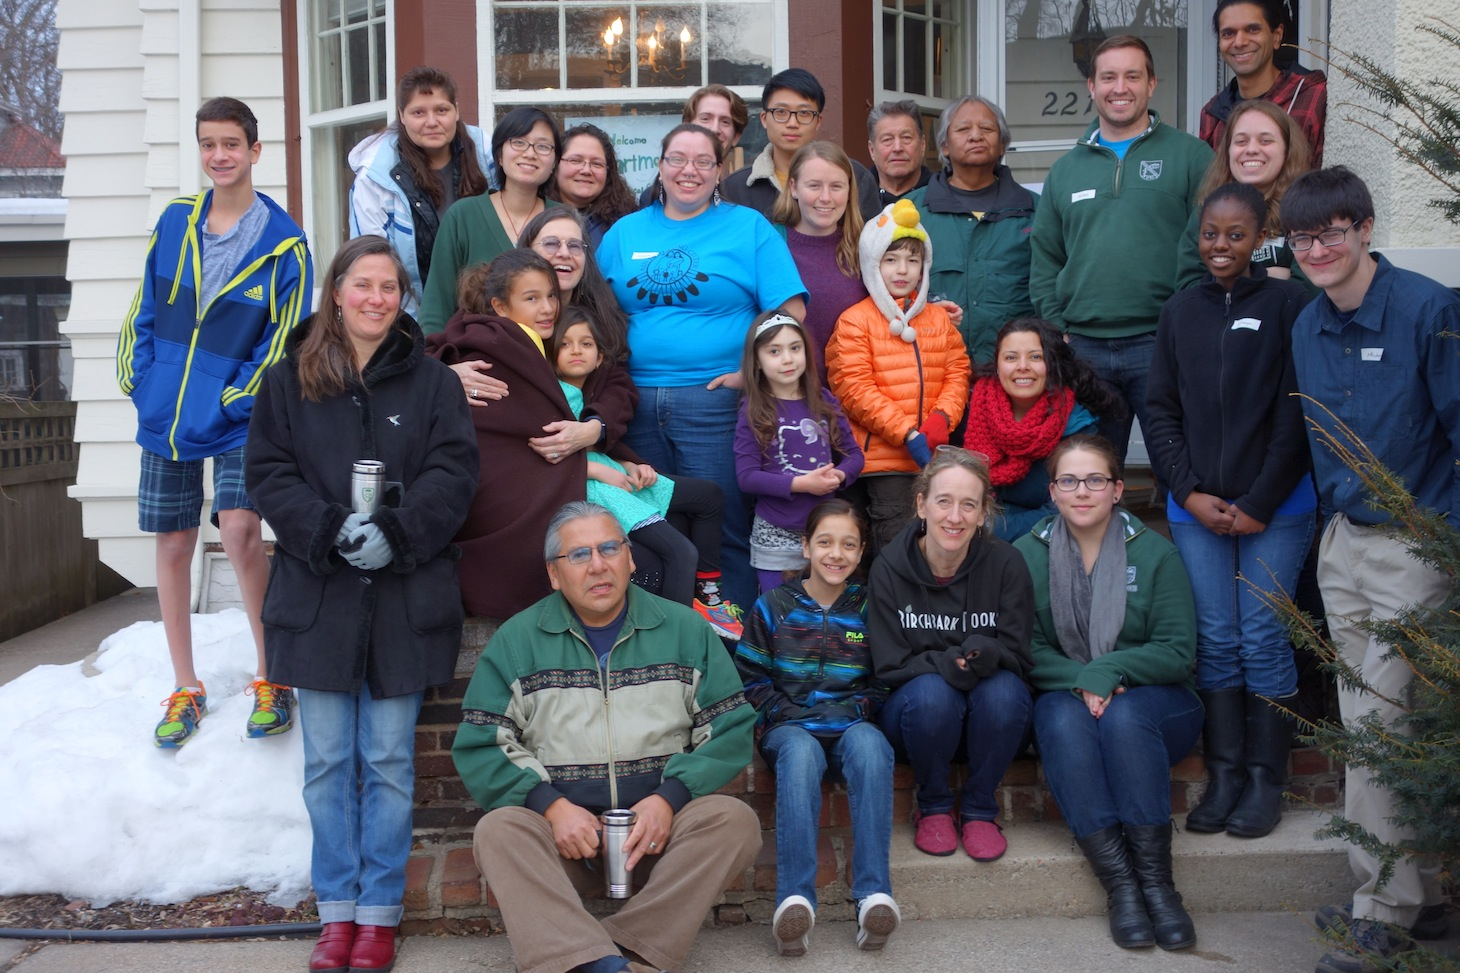 Angela Erdrich, MD, DC '87, Geisel '94 (front row, second from the right), and her husband, Sandeep Patel, MD (back row, far right) hosting Geisel students at their home during the 2014 alternative spring break trip to Minnesota. Erdrich and Patel work with American Indian communities in Minneapolis and in South Dakota, and serve as mentors to Geisel students.